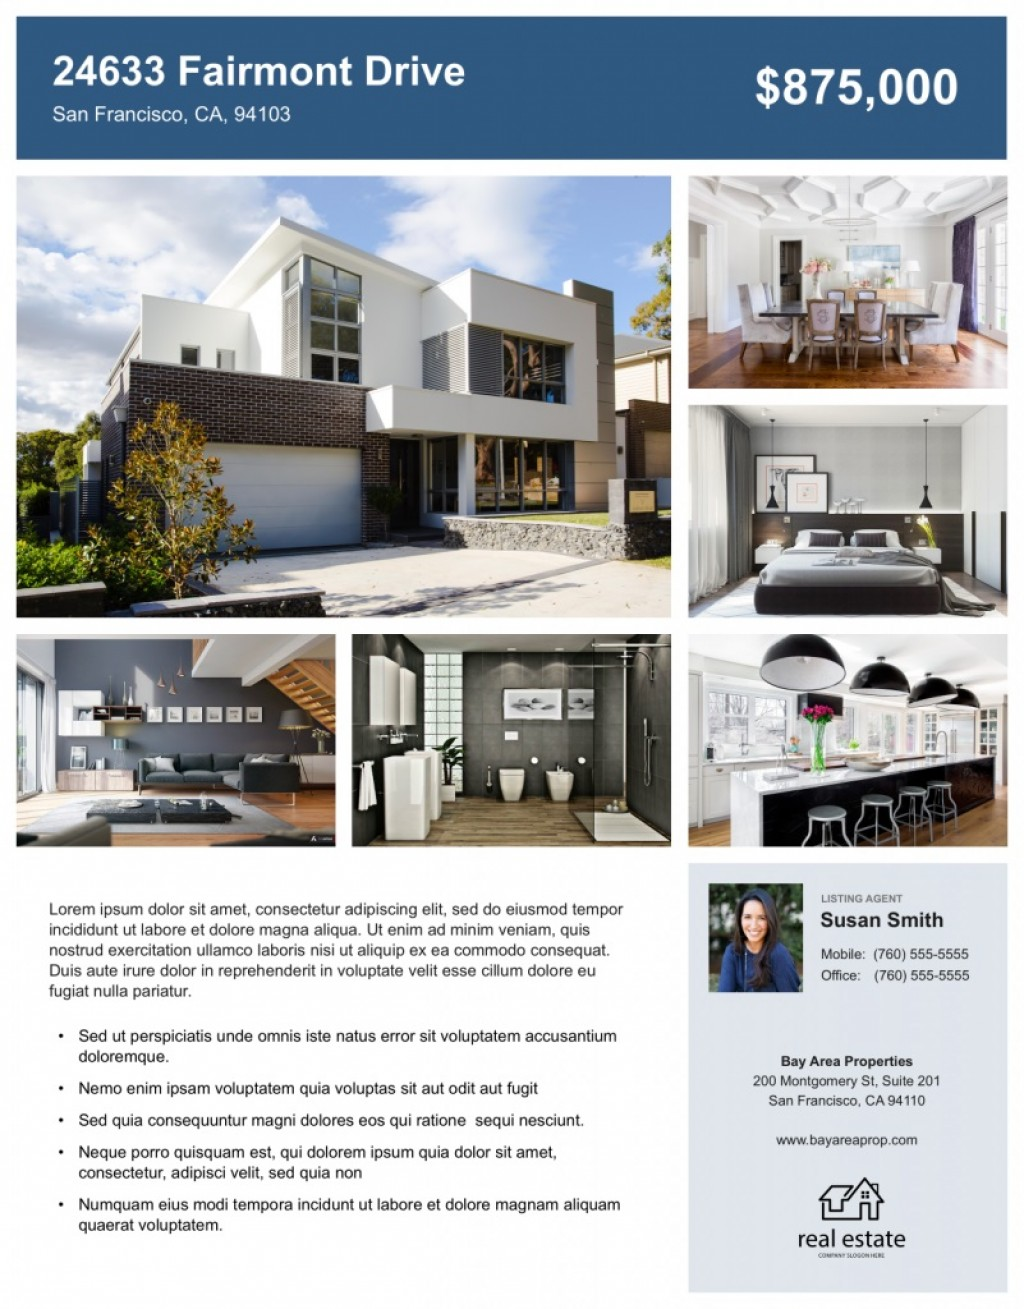 006 Unique Real Estate Advertising Template Example  Newspaper Ad Instagram CraigslistLarge